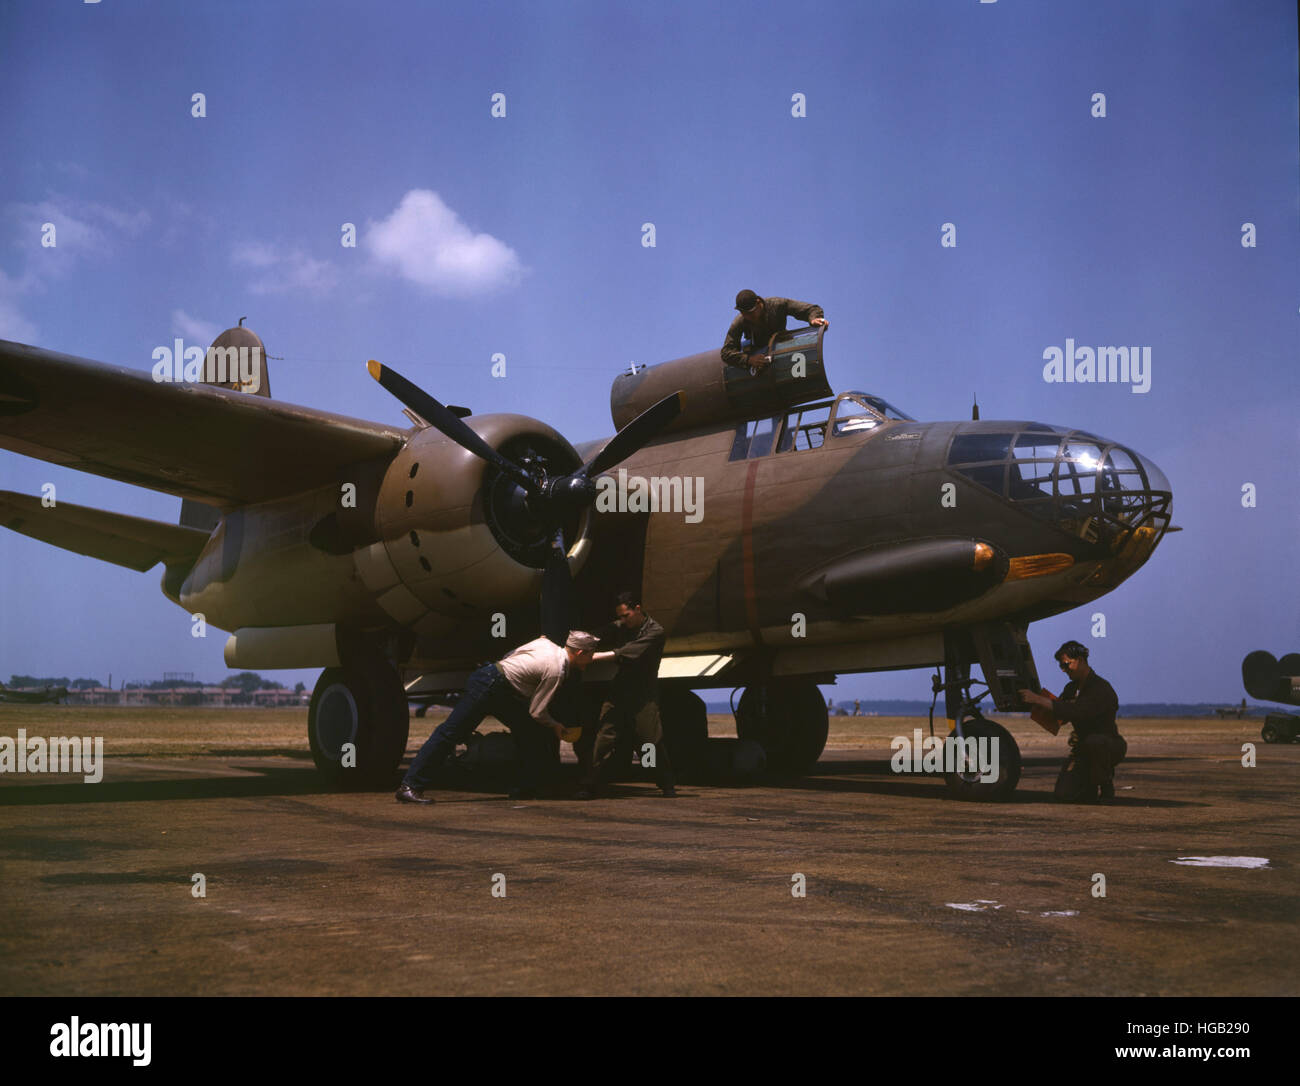 July 1942 - An A-20 Havoc bomber being serviced at Langley Field, Virginia. - Stock Image